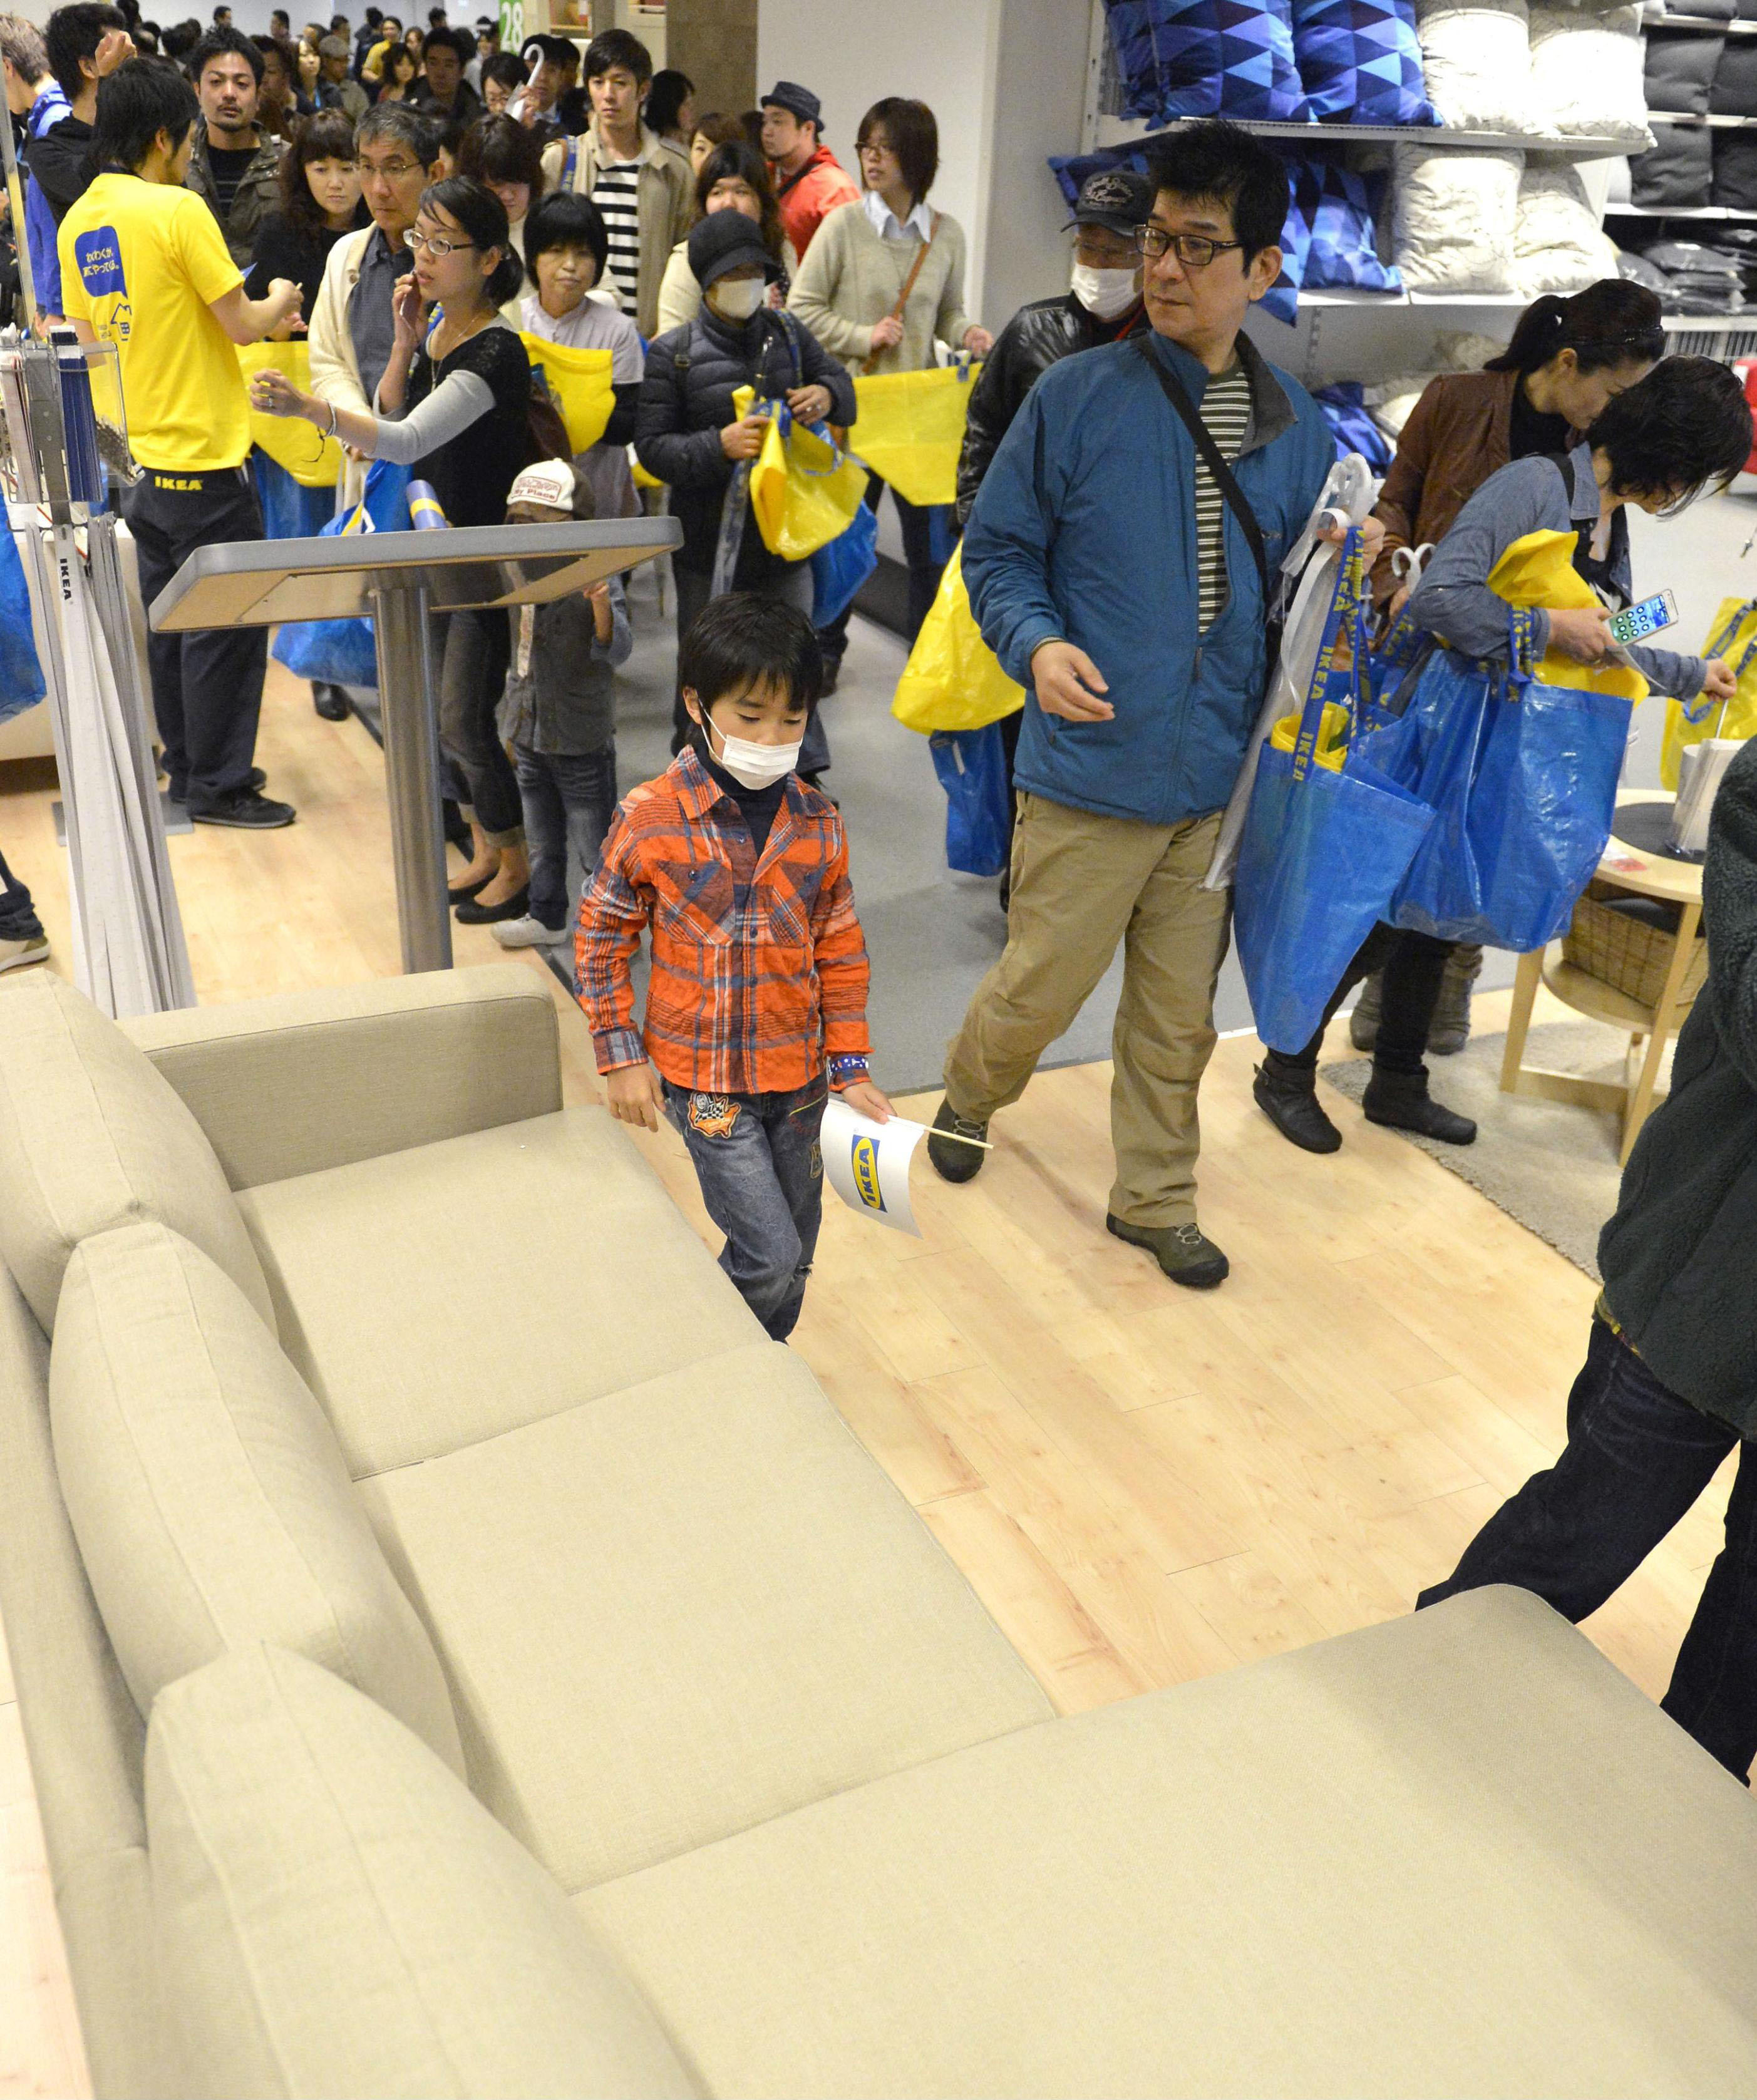 Furniture frenzy: Shoppers explore the newly opened Ikea outlet in Fukuoka on Wednesday. | KYODO